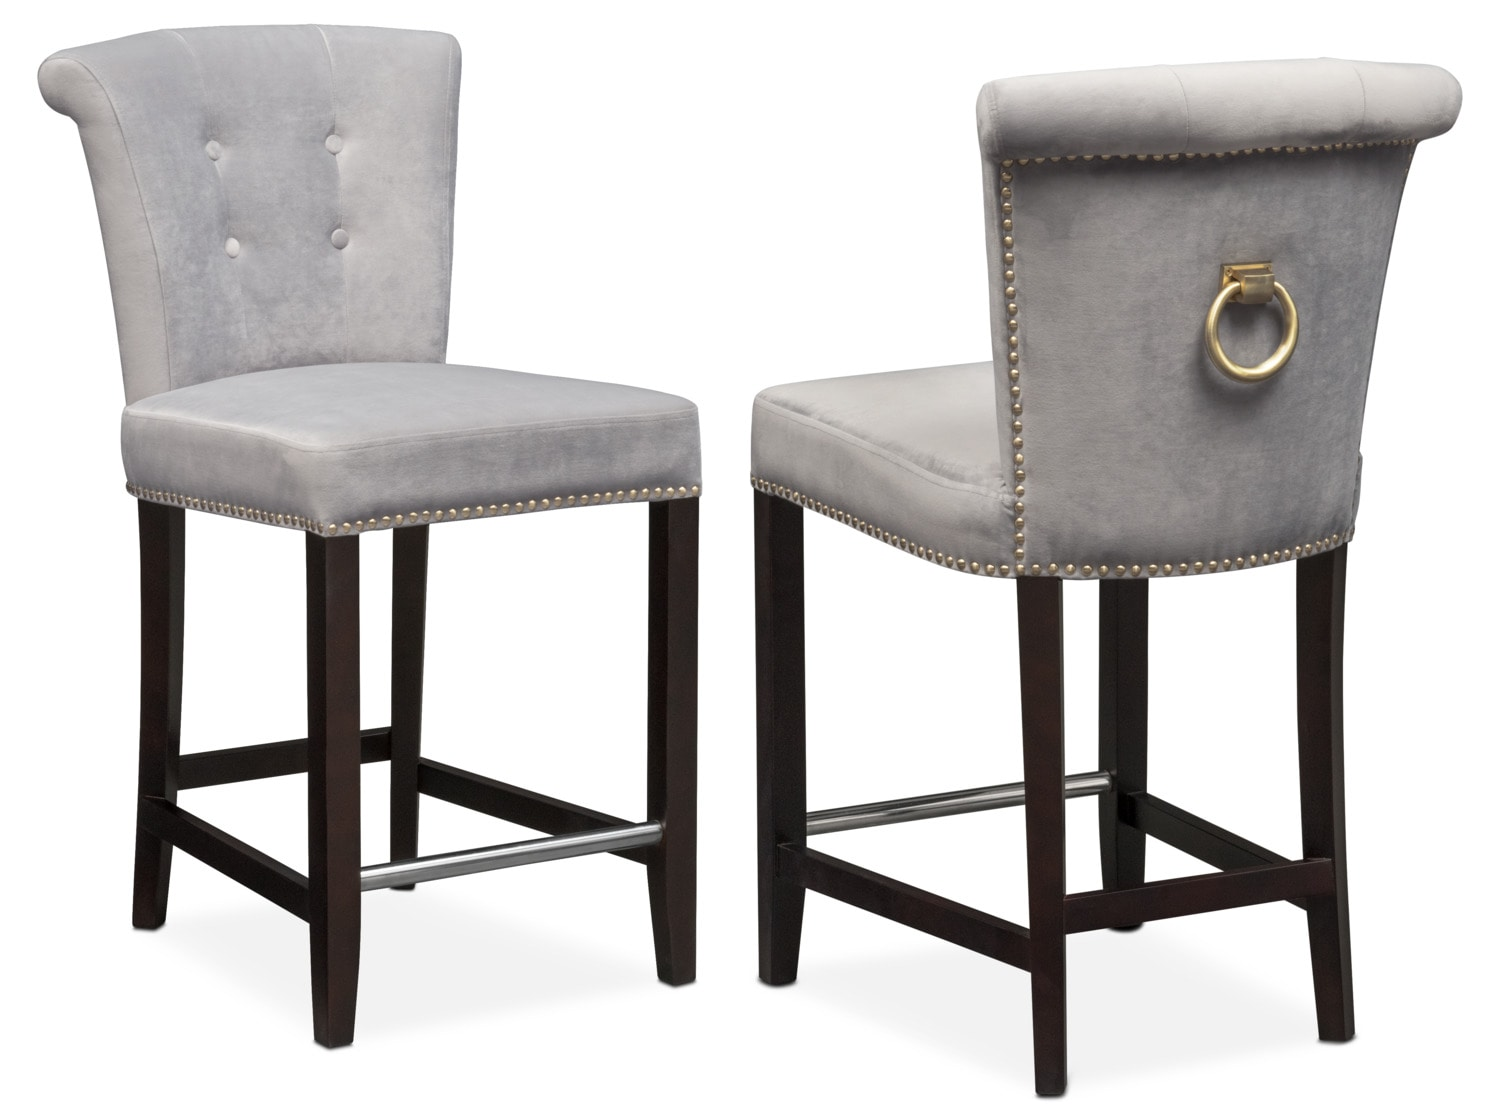 Calloway Counter-Height Stool - Gray/Gold  sc 1 st  American Signature Furniture : bar chair stool - islam-shia.org